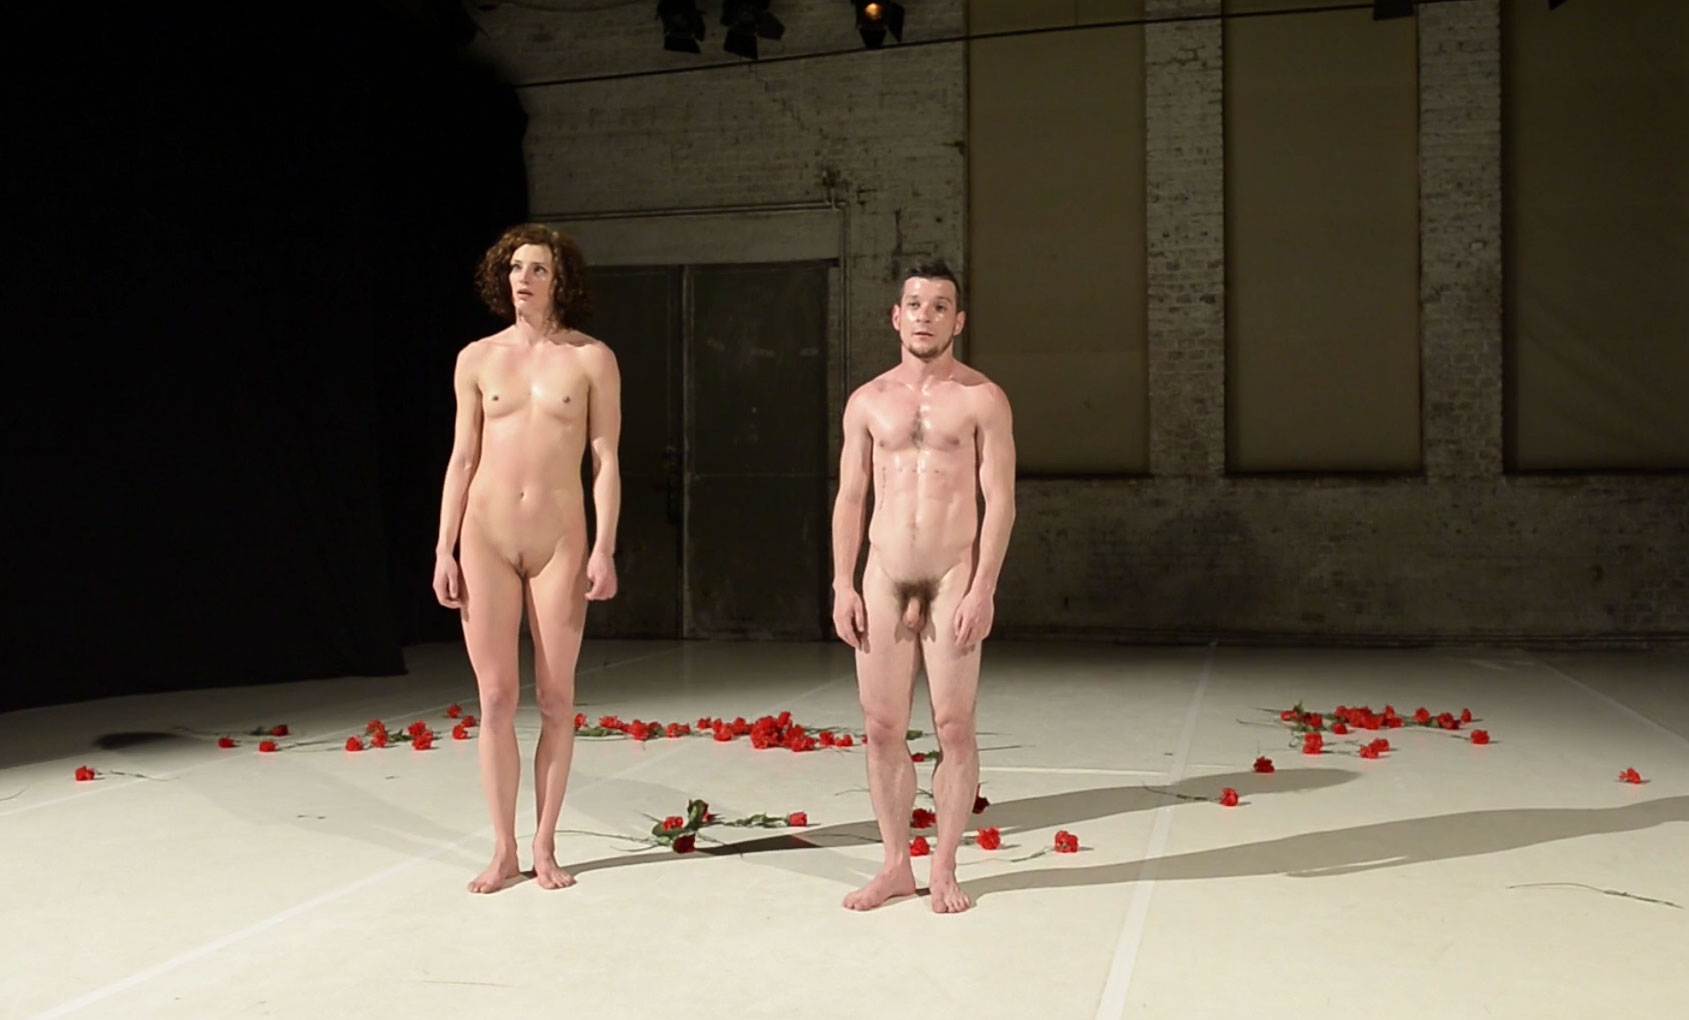 naked choreography show by lovers